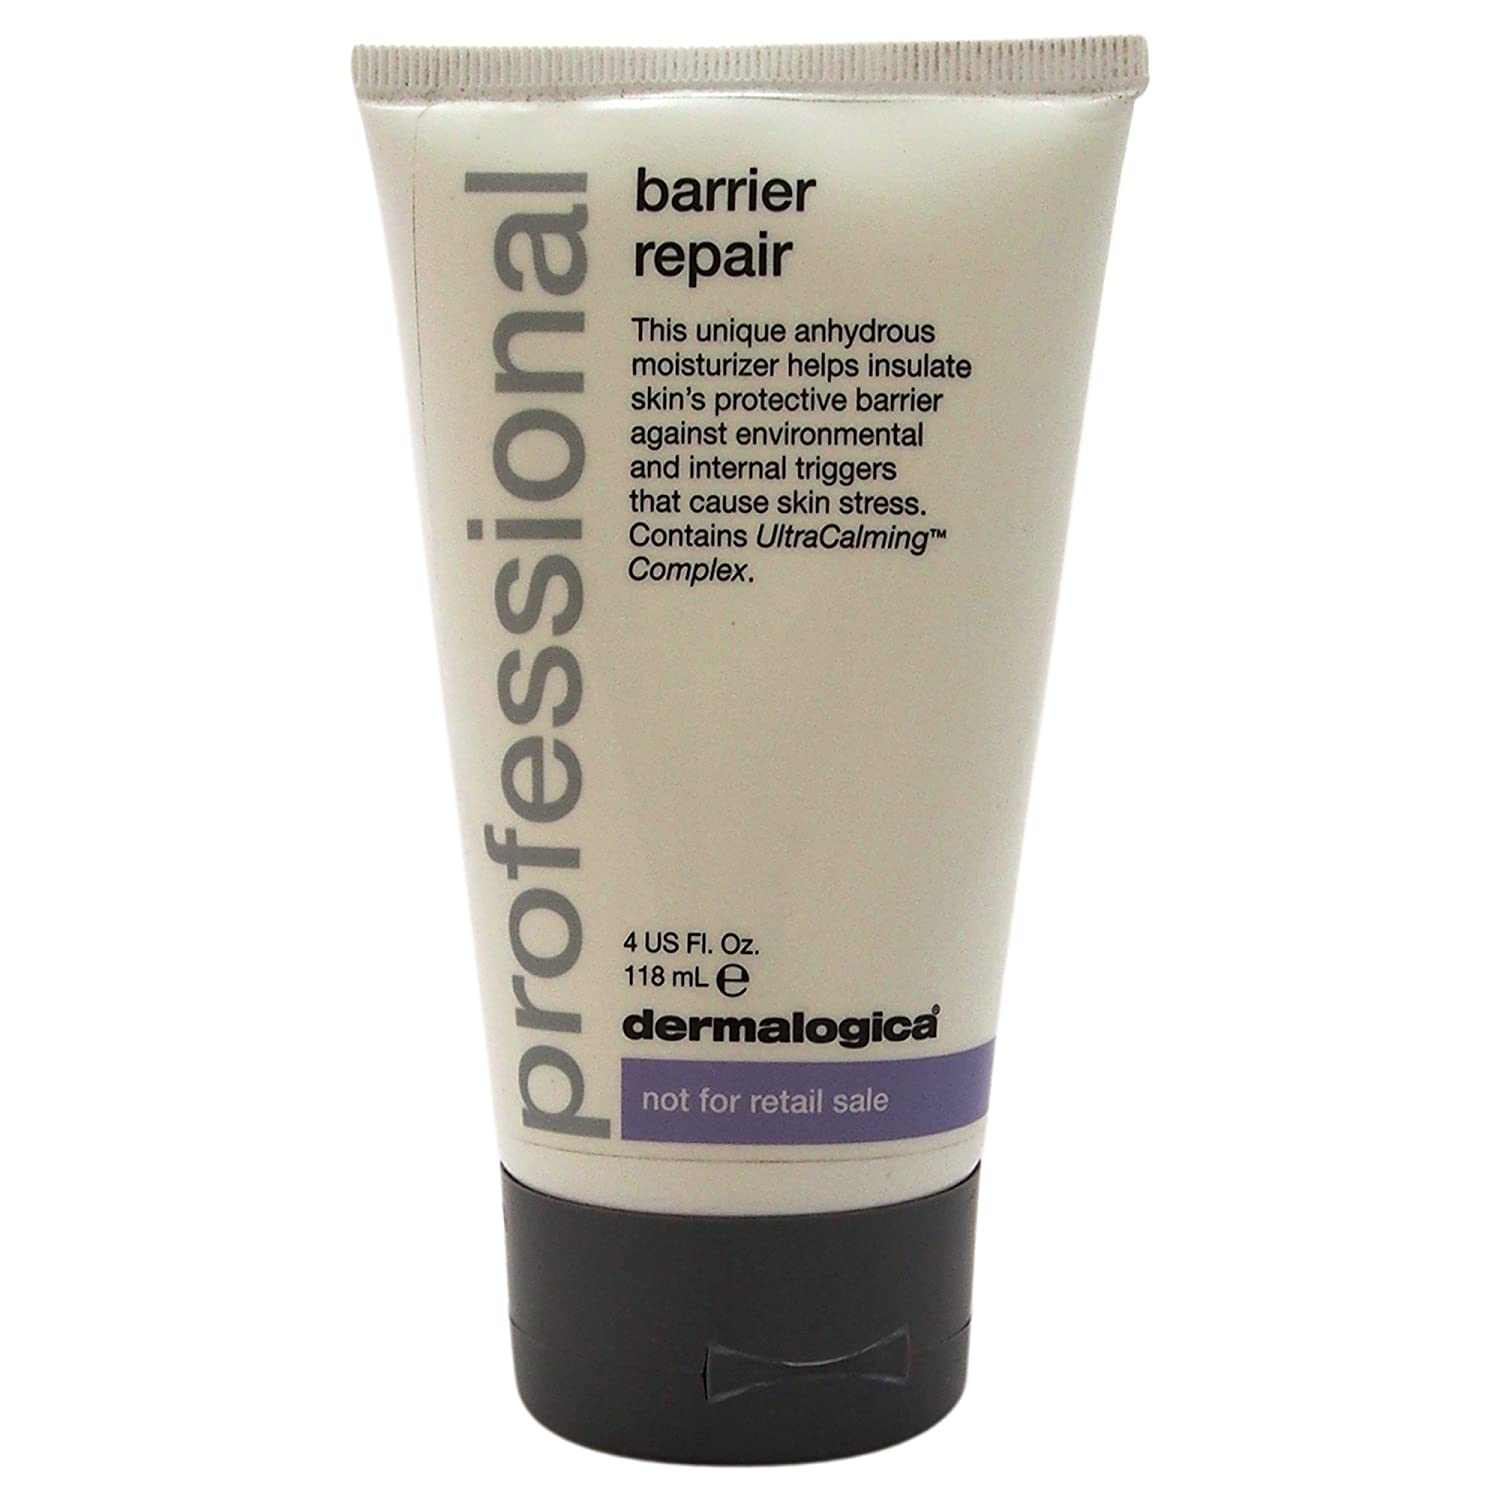 Barrier Repair by Dermalogica for Unisex - 1 oz Moisturizer 103402